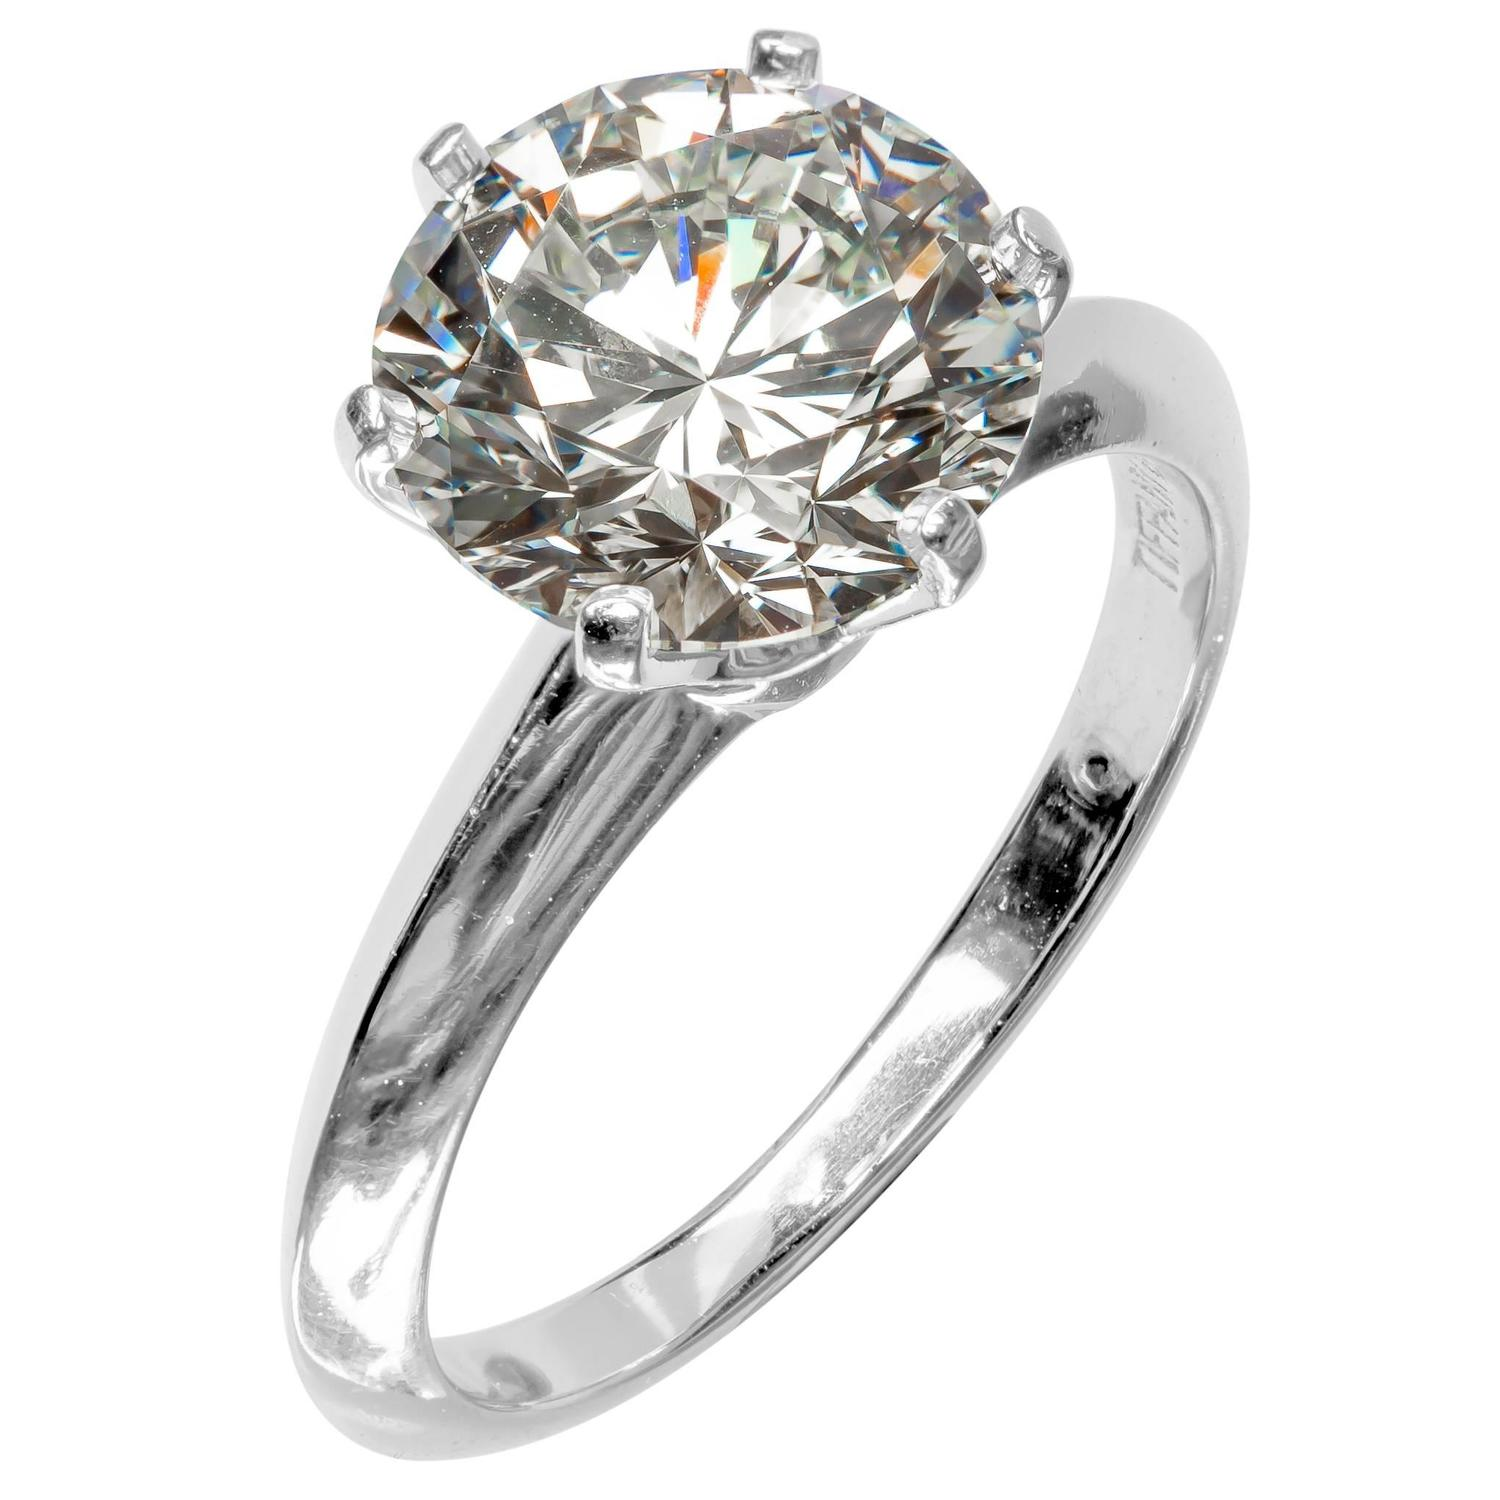 Tiffany and Co 2 35 Carat Diamond Platinum Solitaire Ring For Sale at 1stdibs